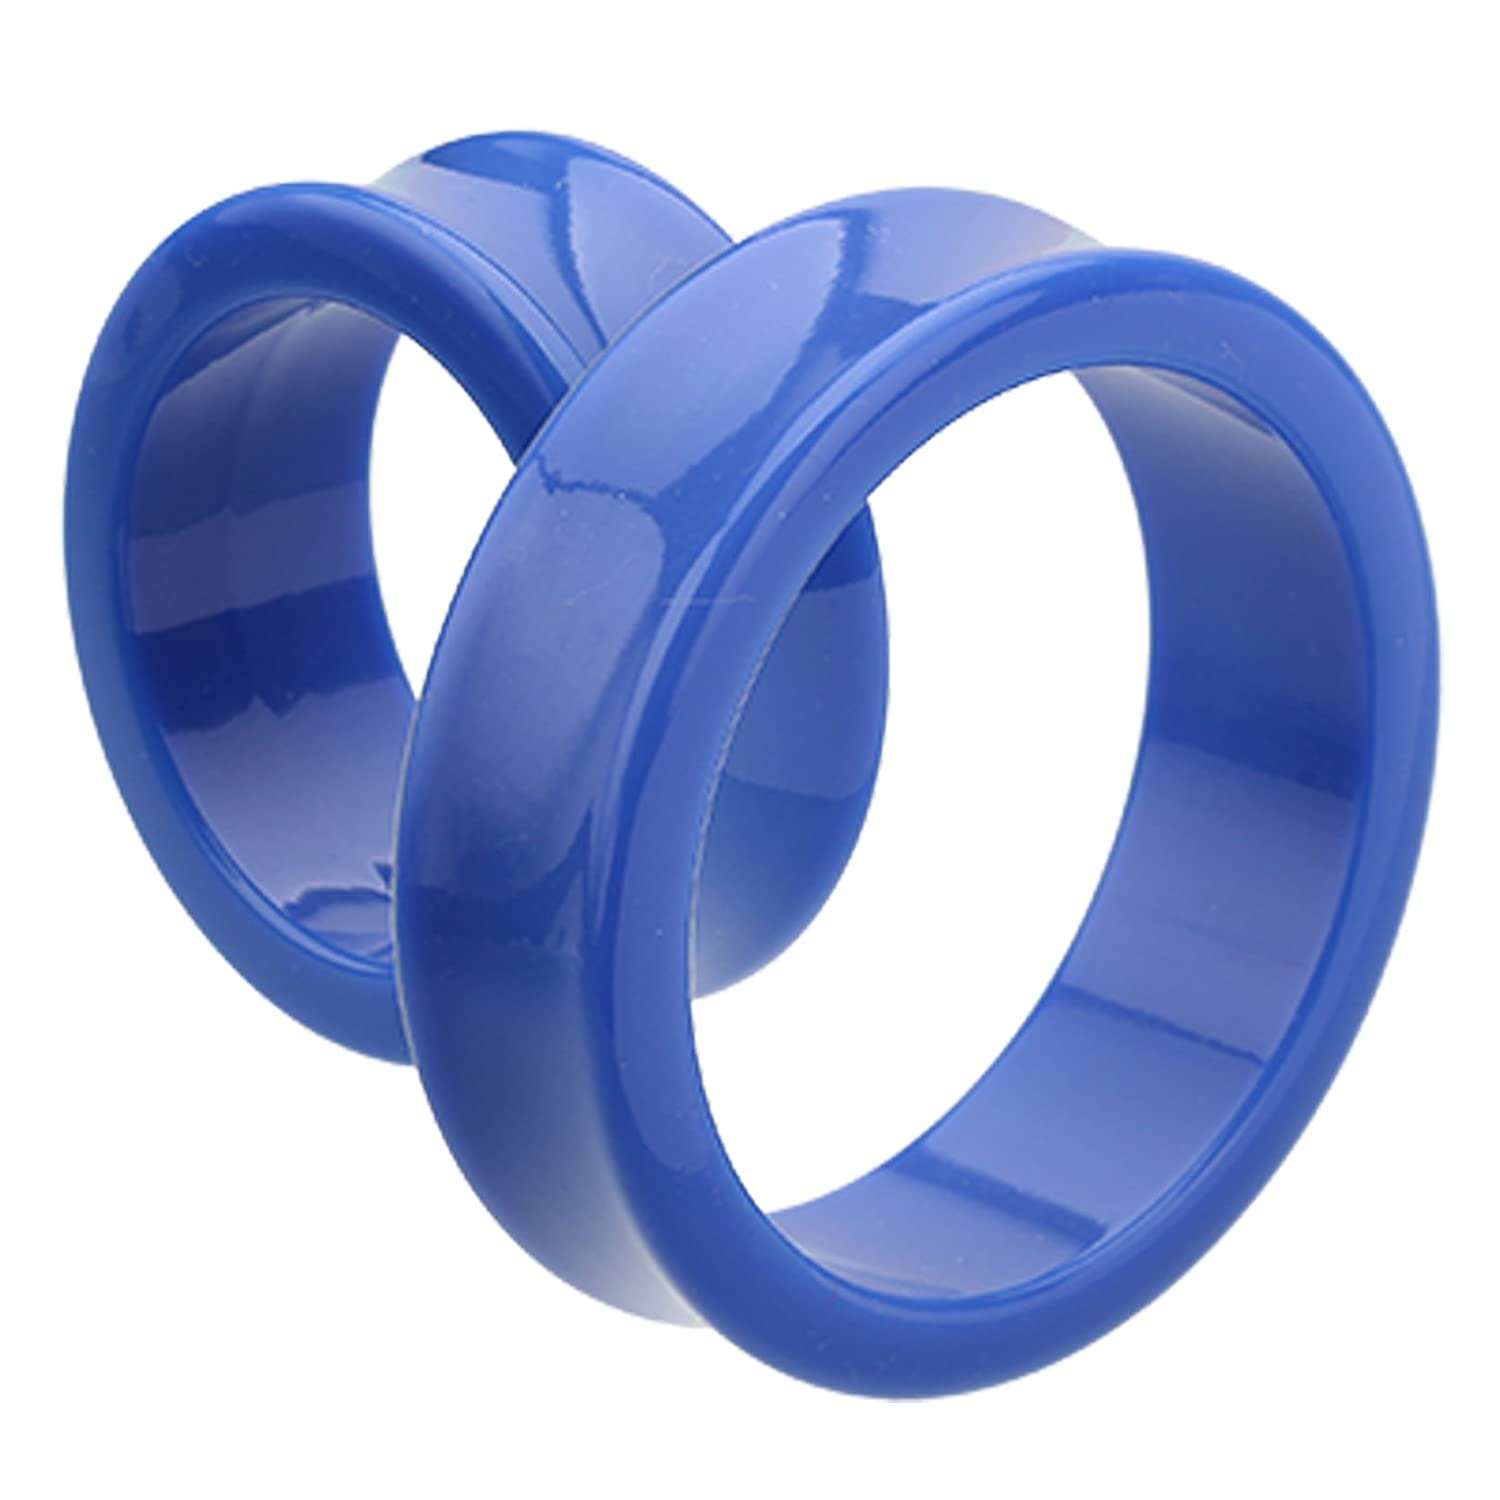 Blue Supersize Neon Colored Acrylic Double Flared Ear Tunnel Plug Sold as a Pair